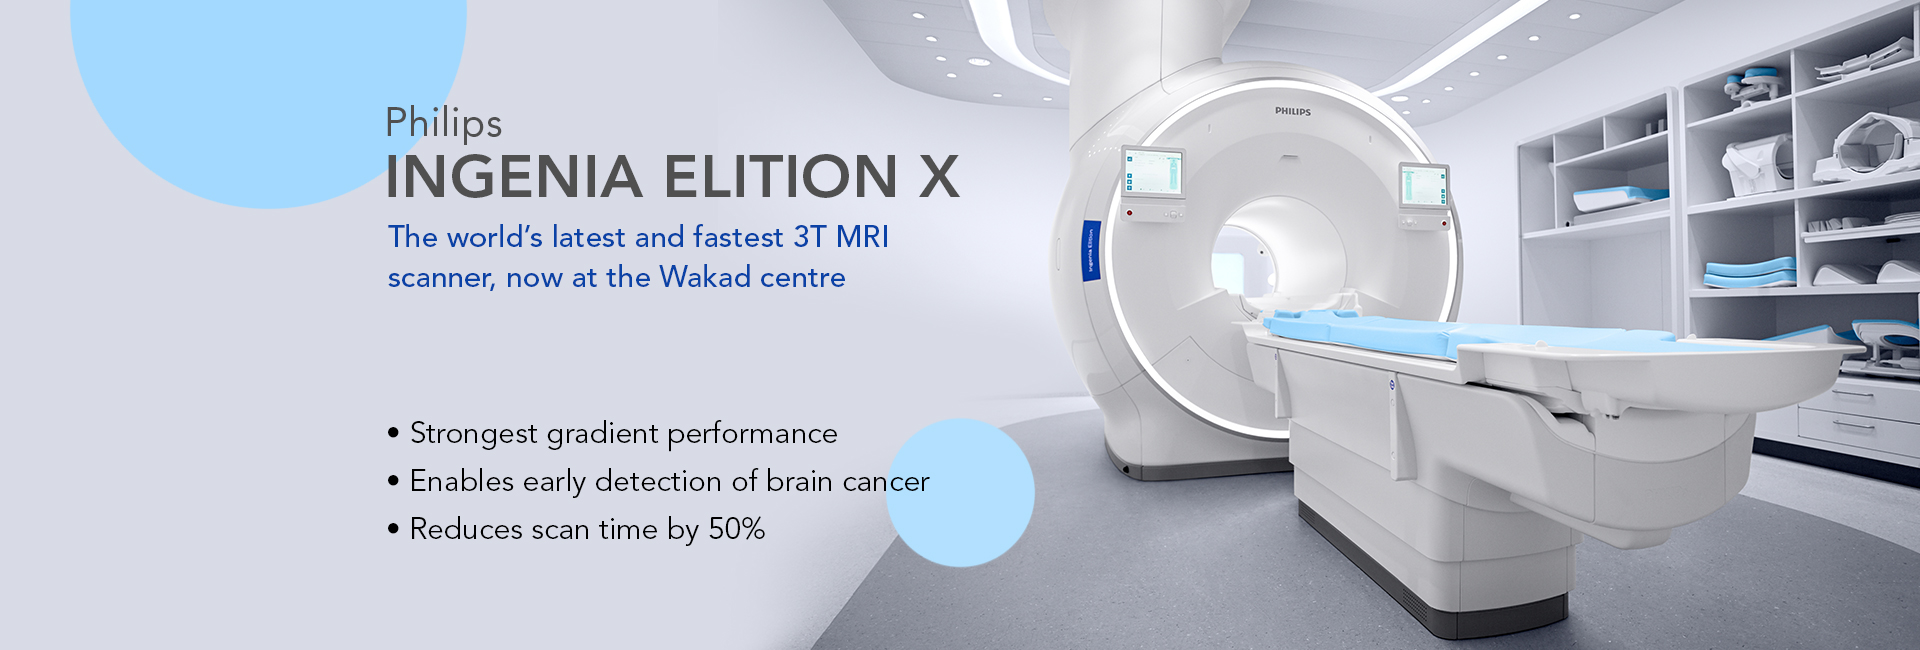 Star Imaging and Research Centre 3T MRI